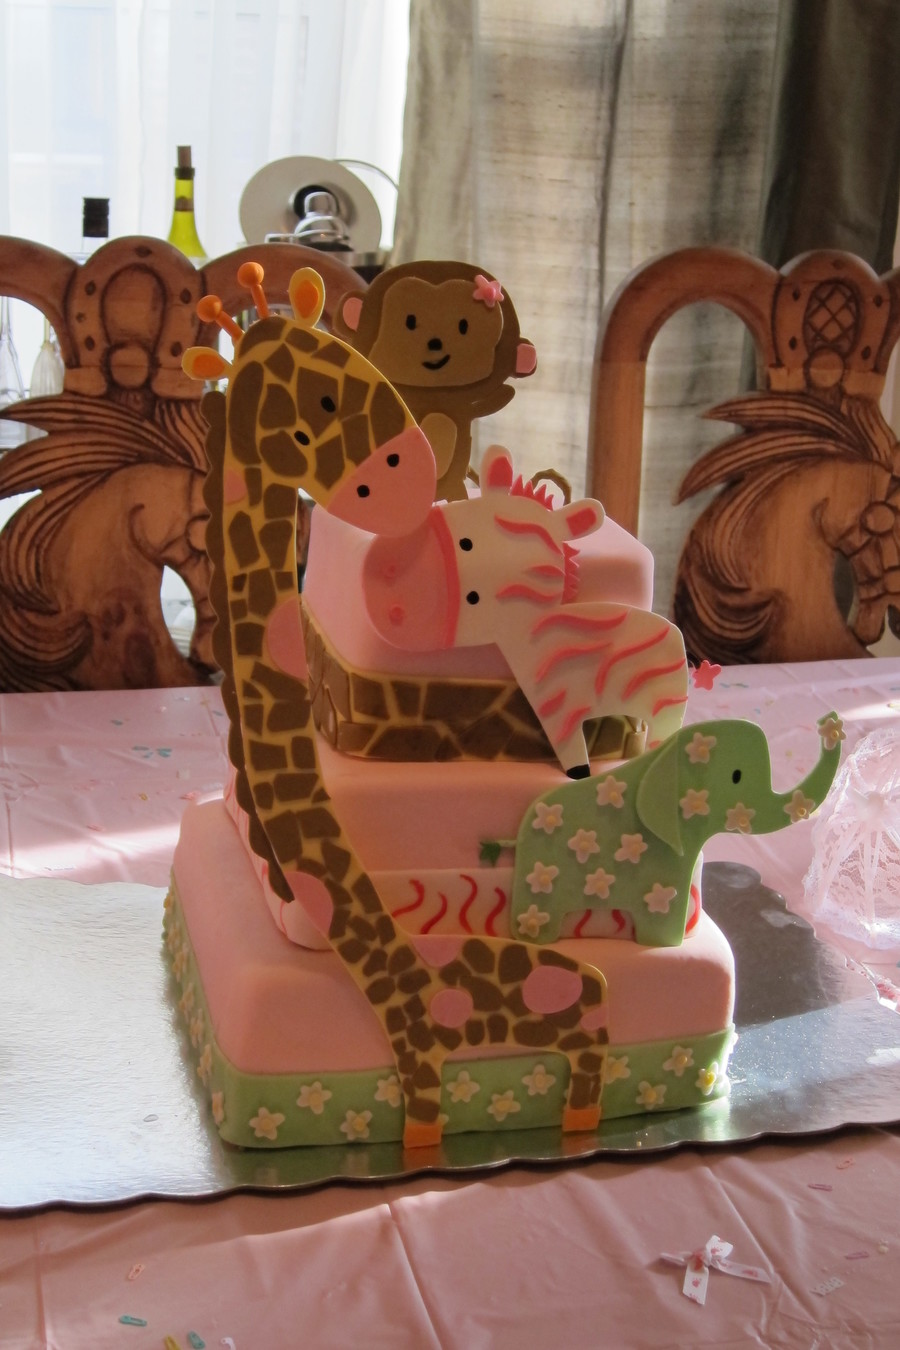 One Wild Baby Shower on Cake Central